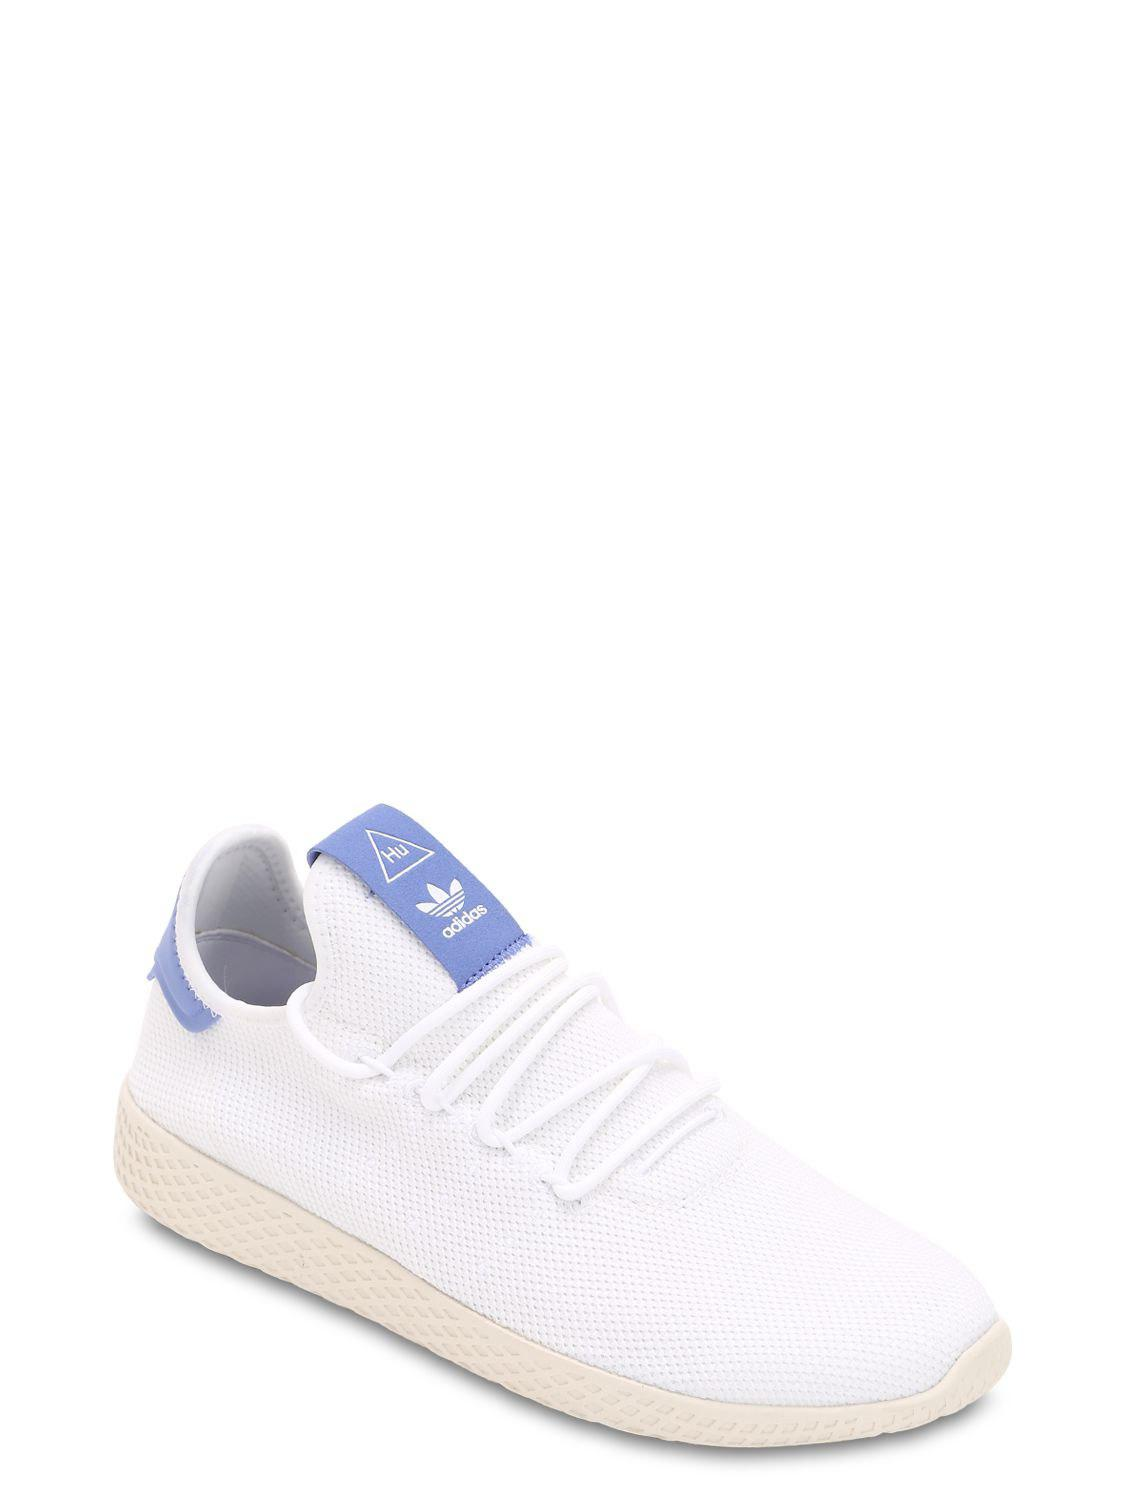 d5af5ac22 adidas Originals Pharrell Williams Knit Sneakers in White for Men - Lyst